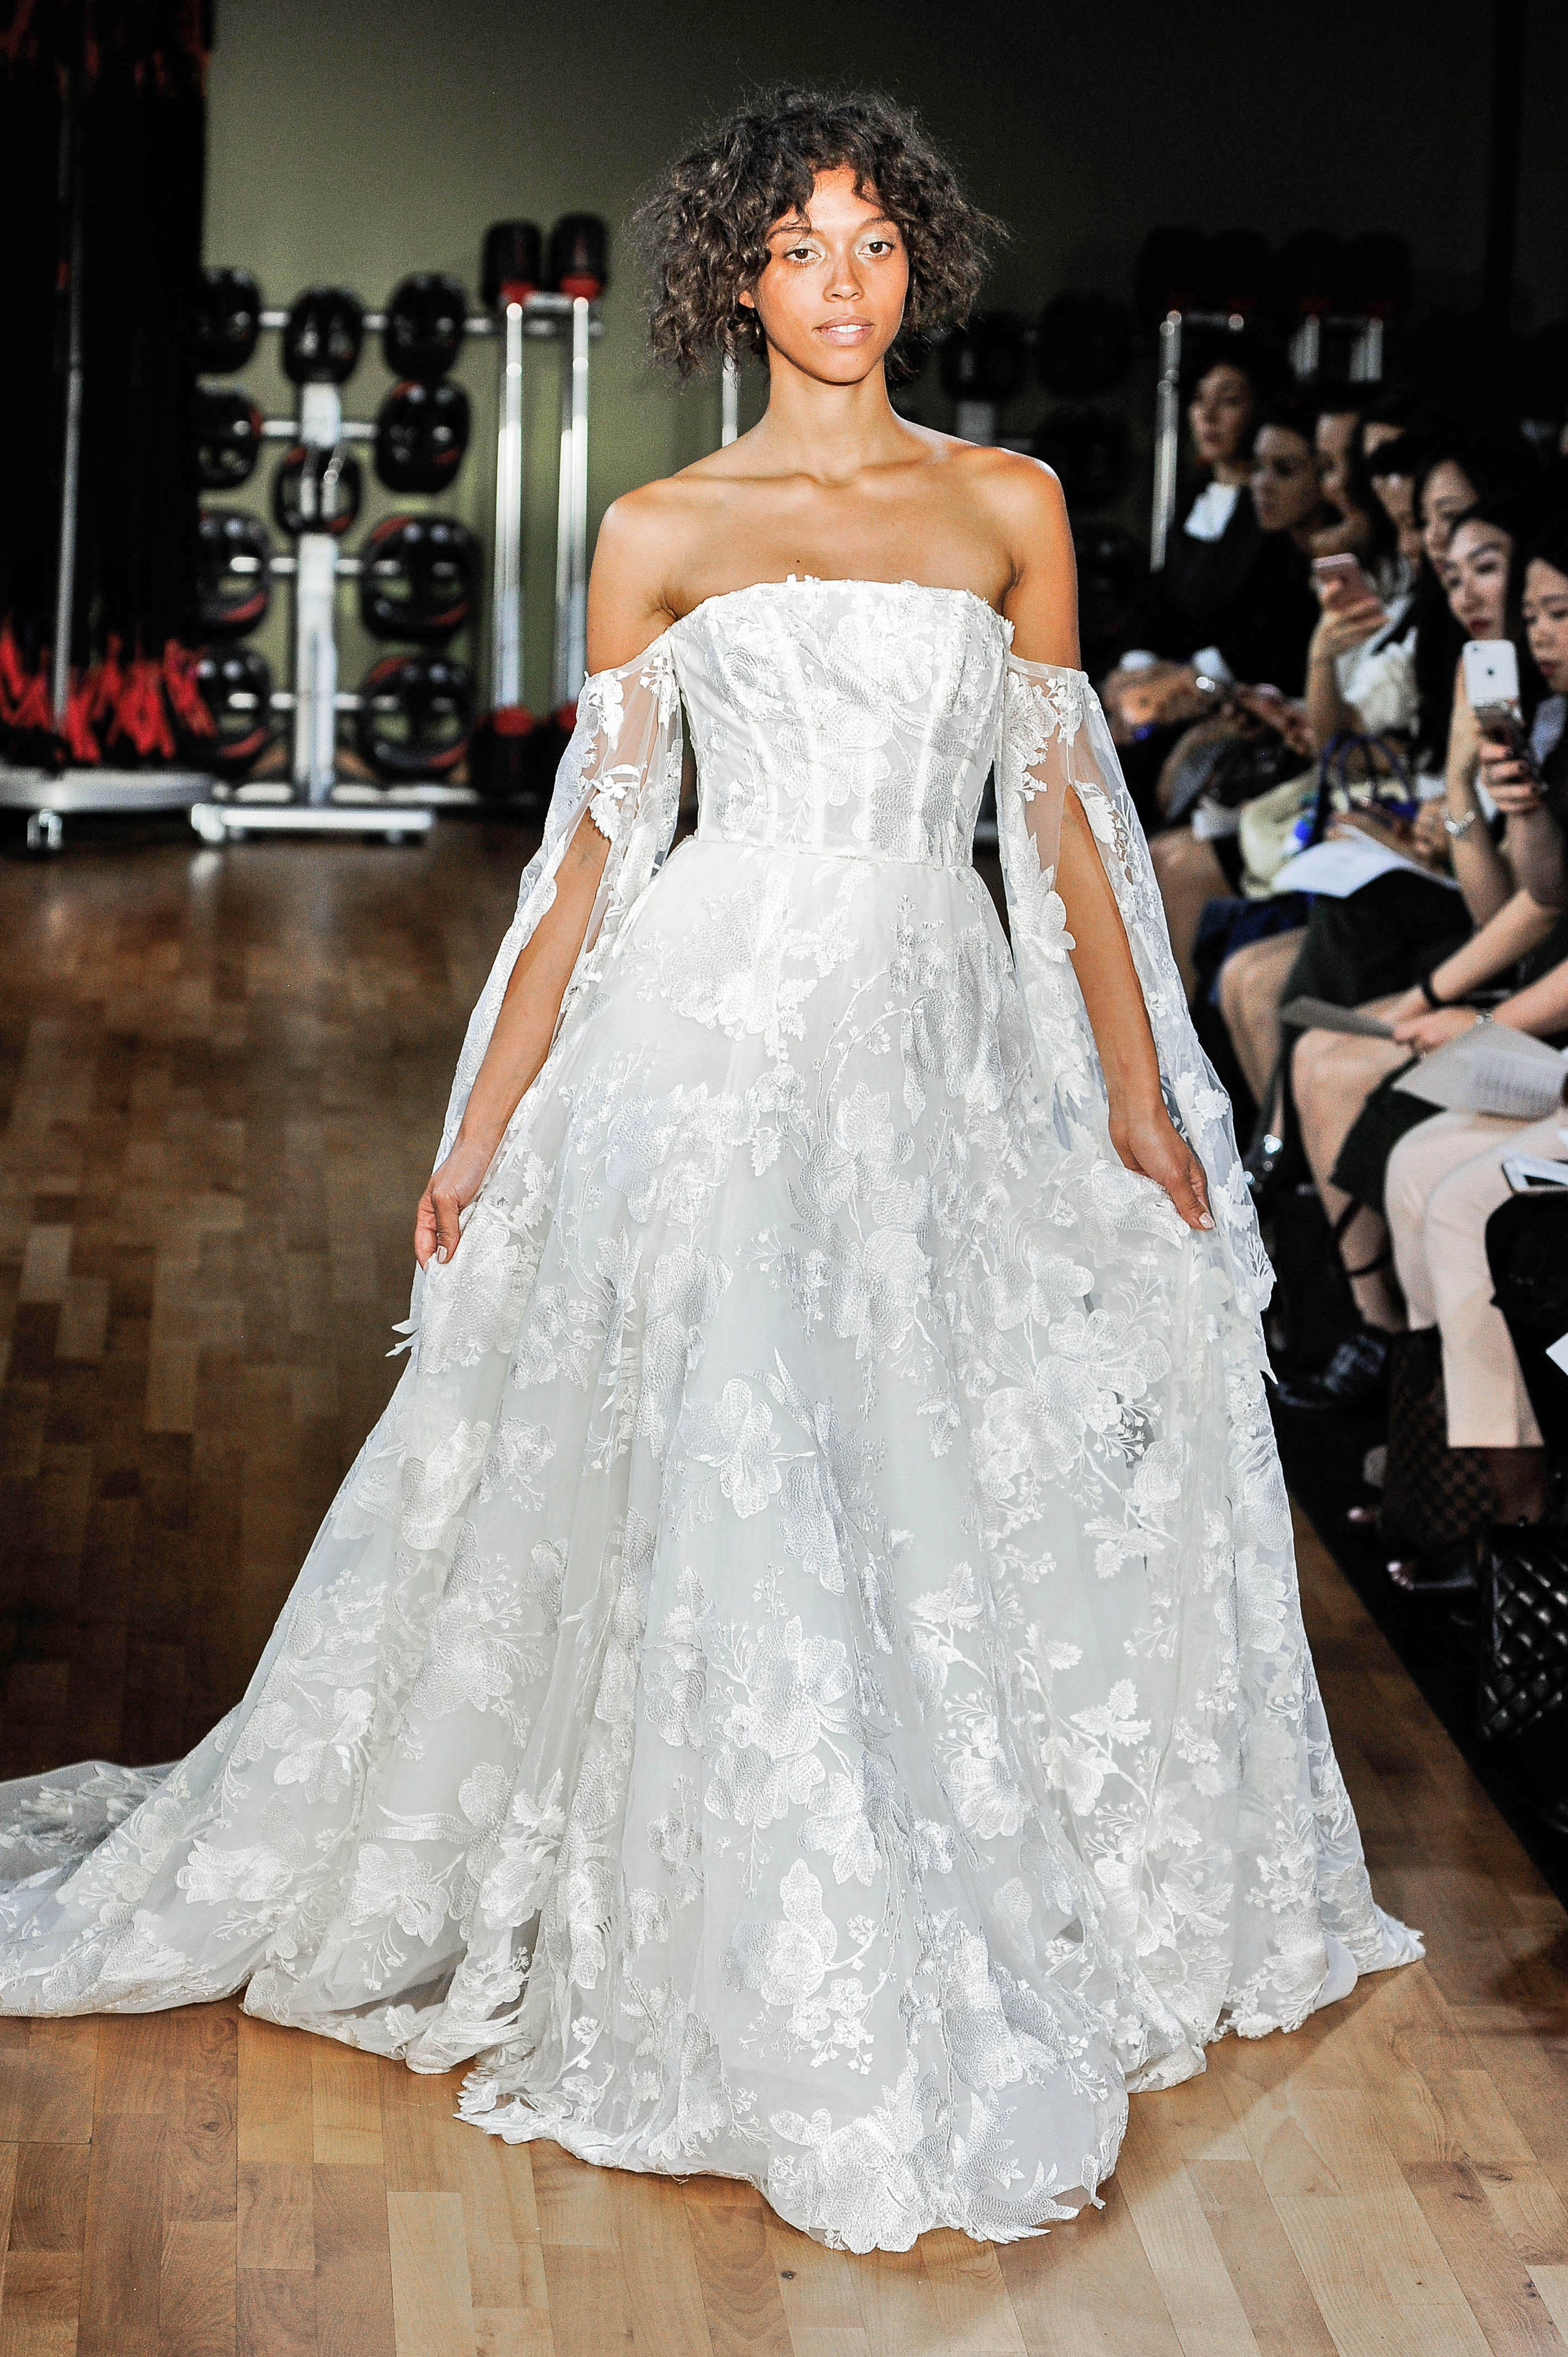 rivini by rita vinieris wedding dress fall 2018 lace off the shoulder a-line